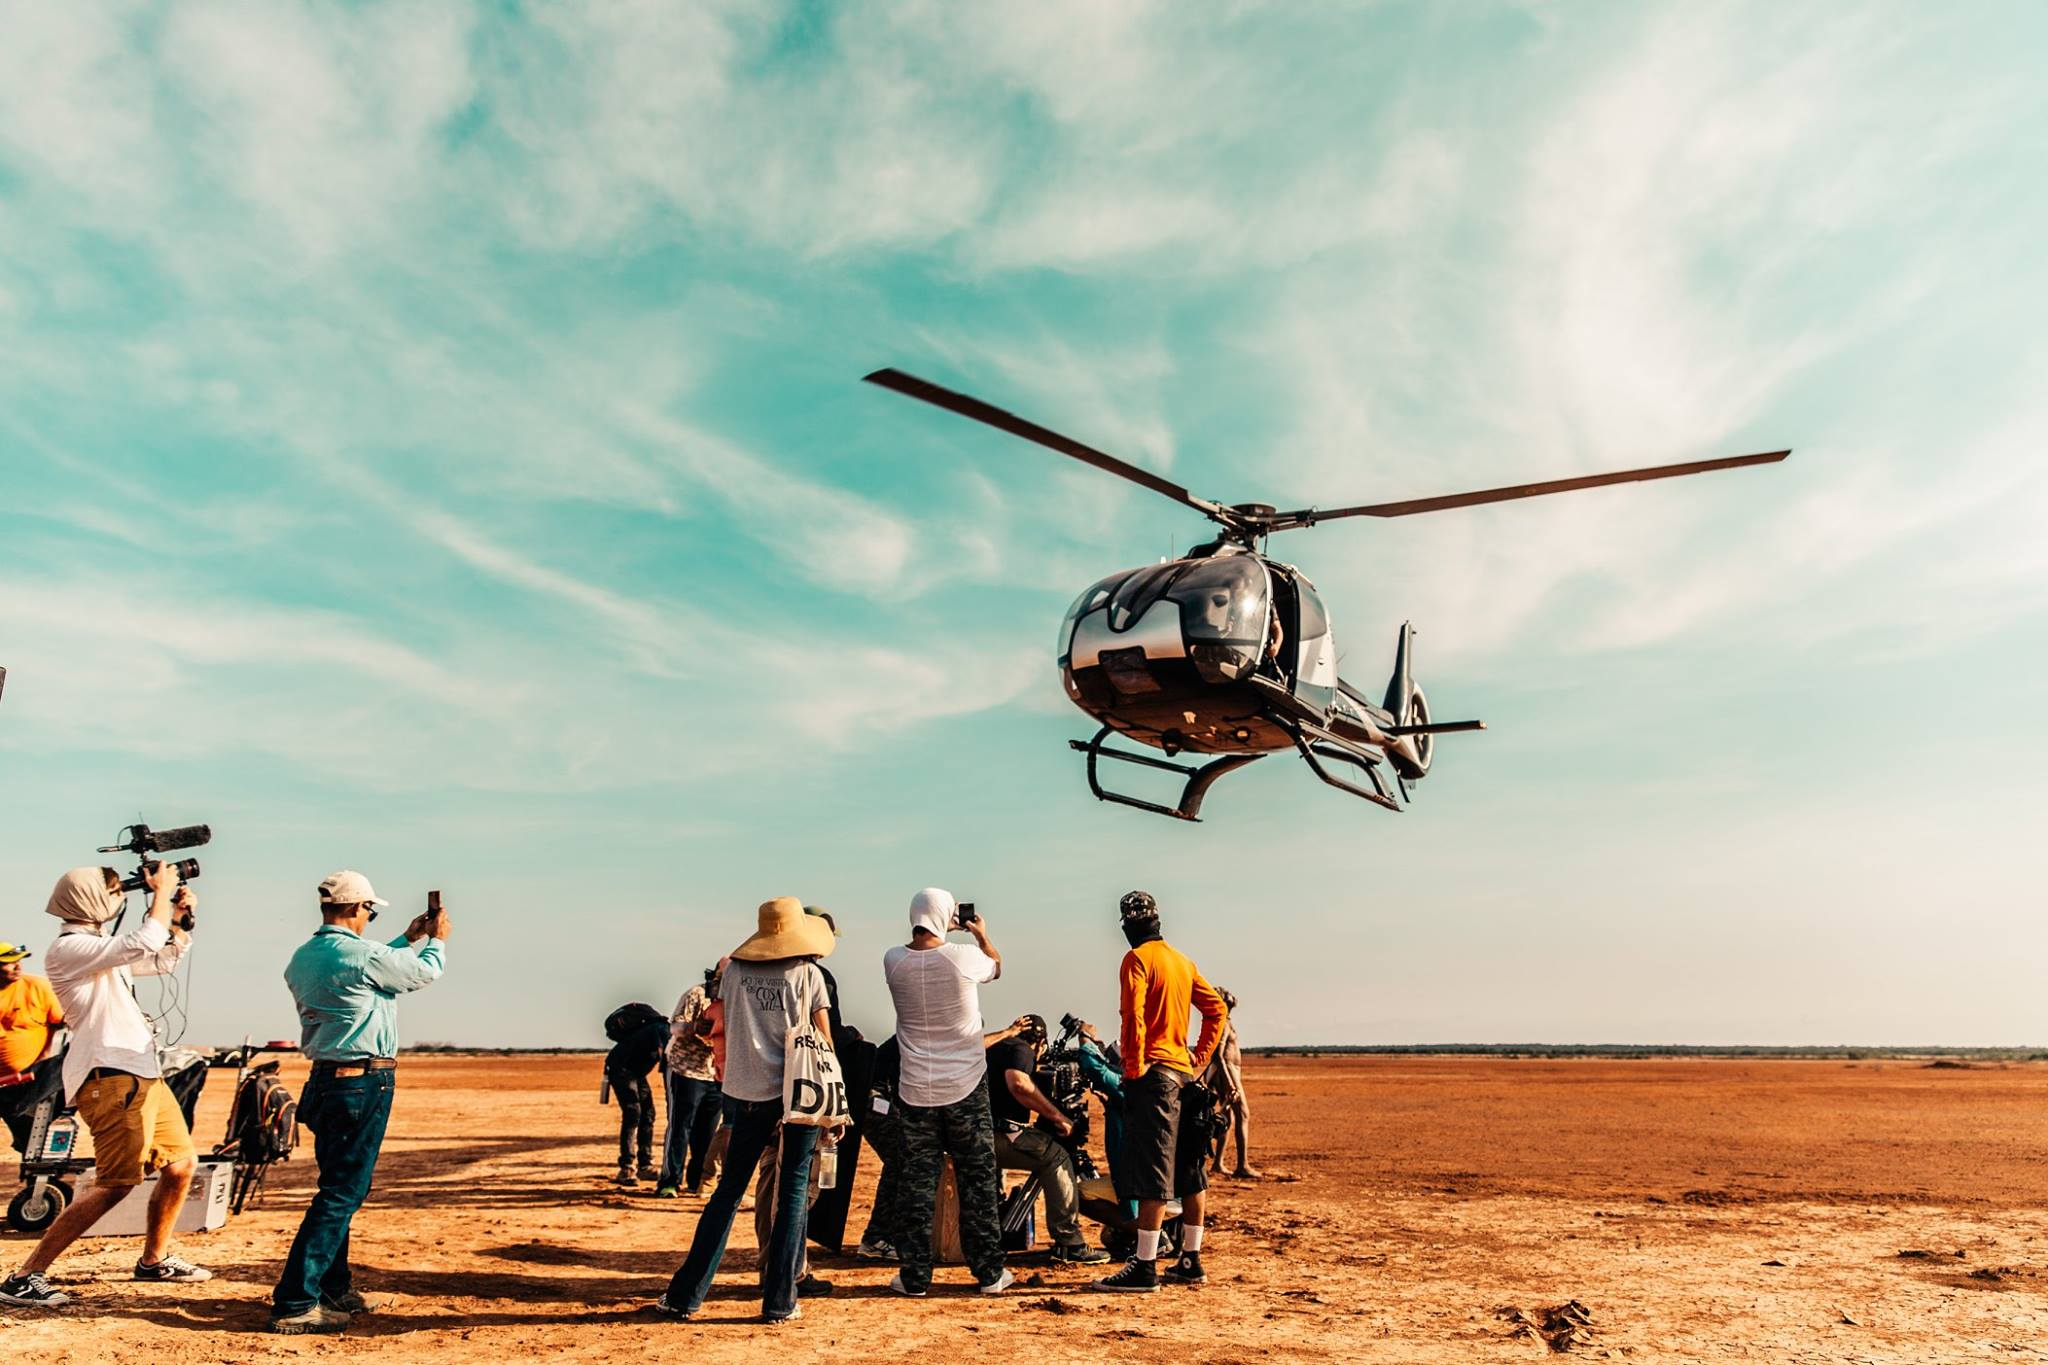 Filming in the desert, woefully unprepared for the dust kicked up by the choppers.  Photo credit: Yasha Malekzad